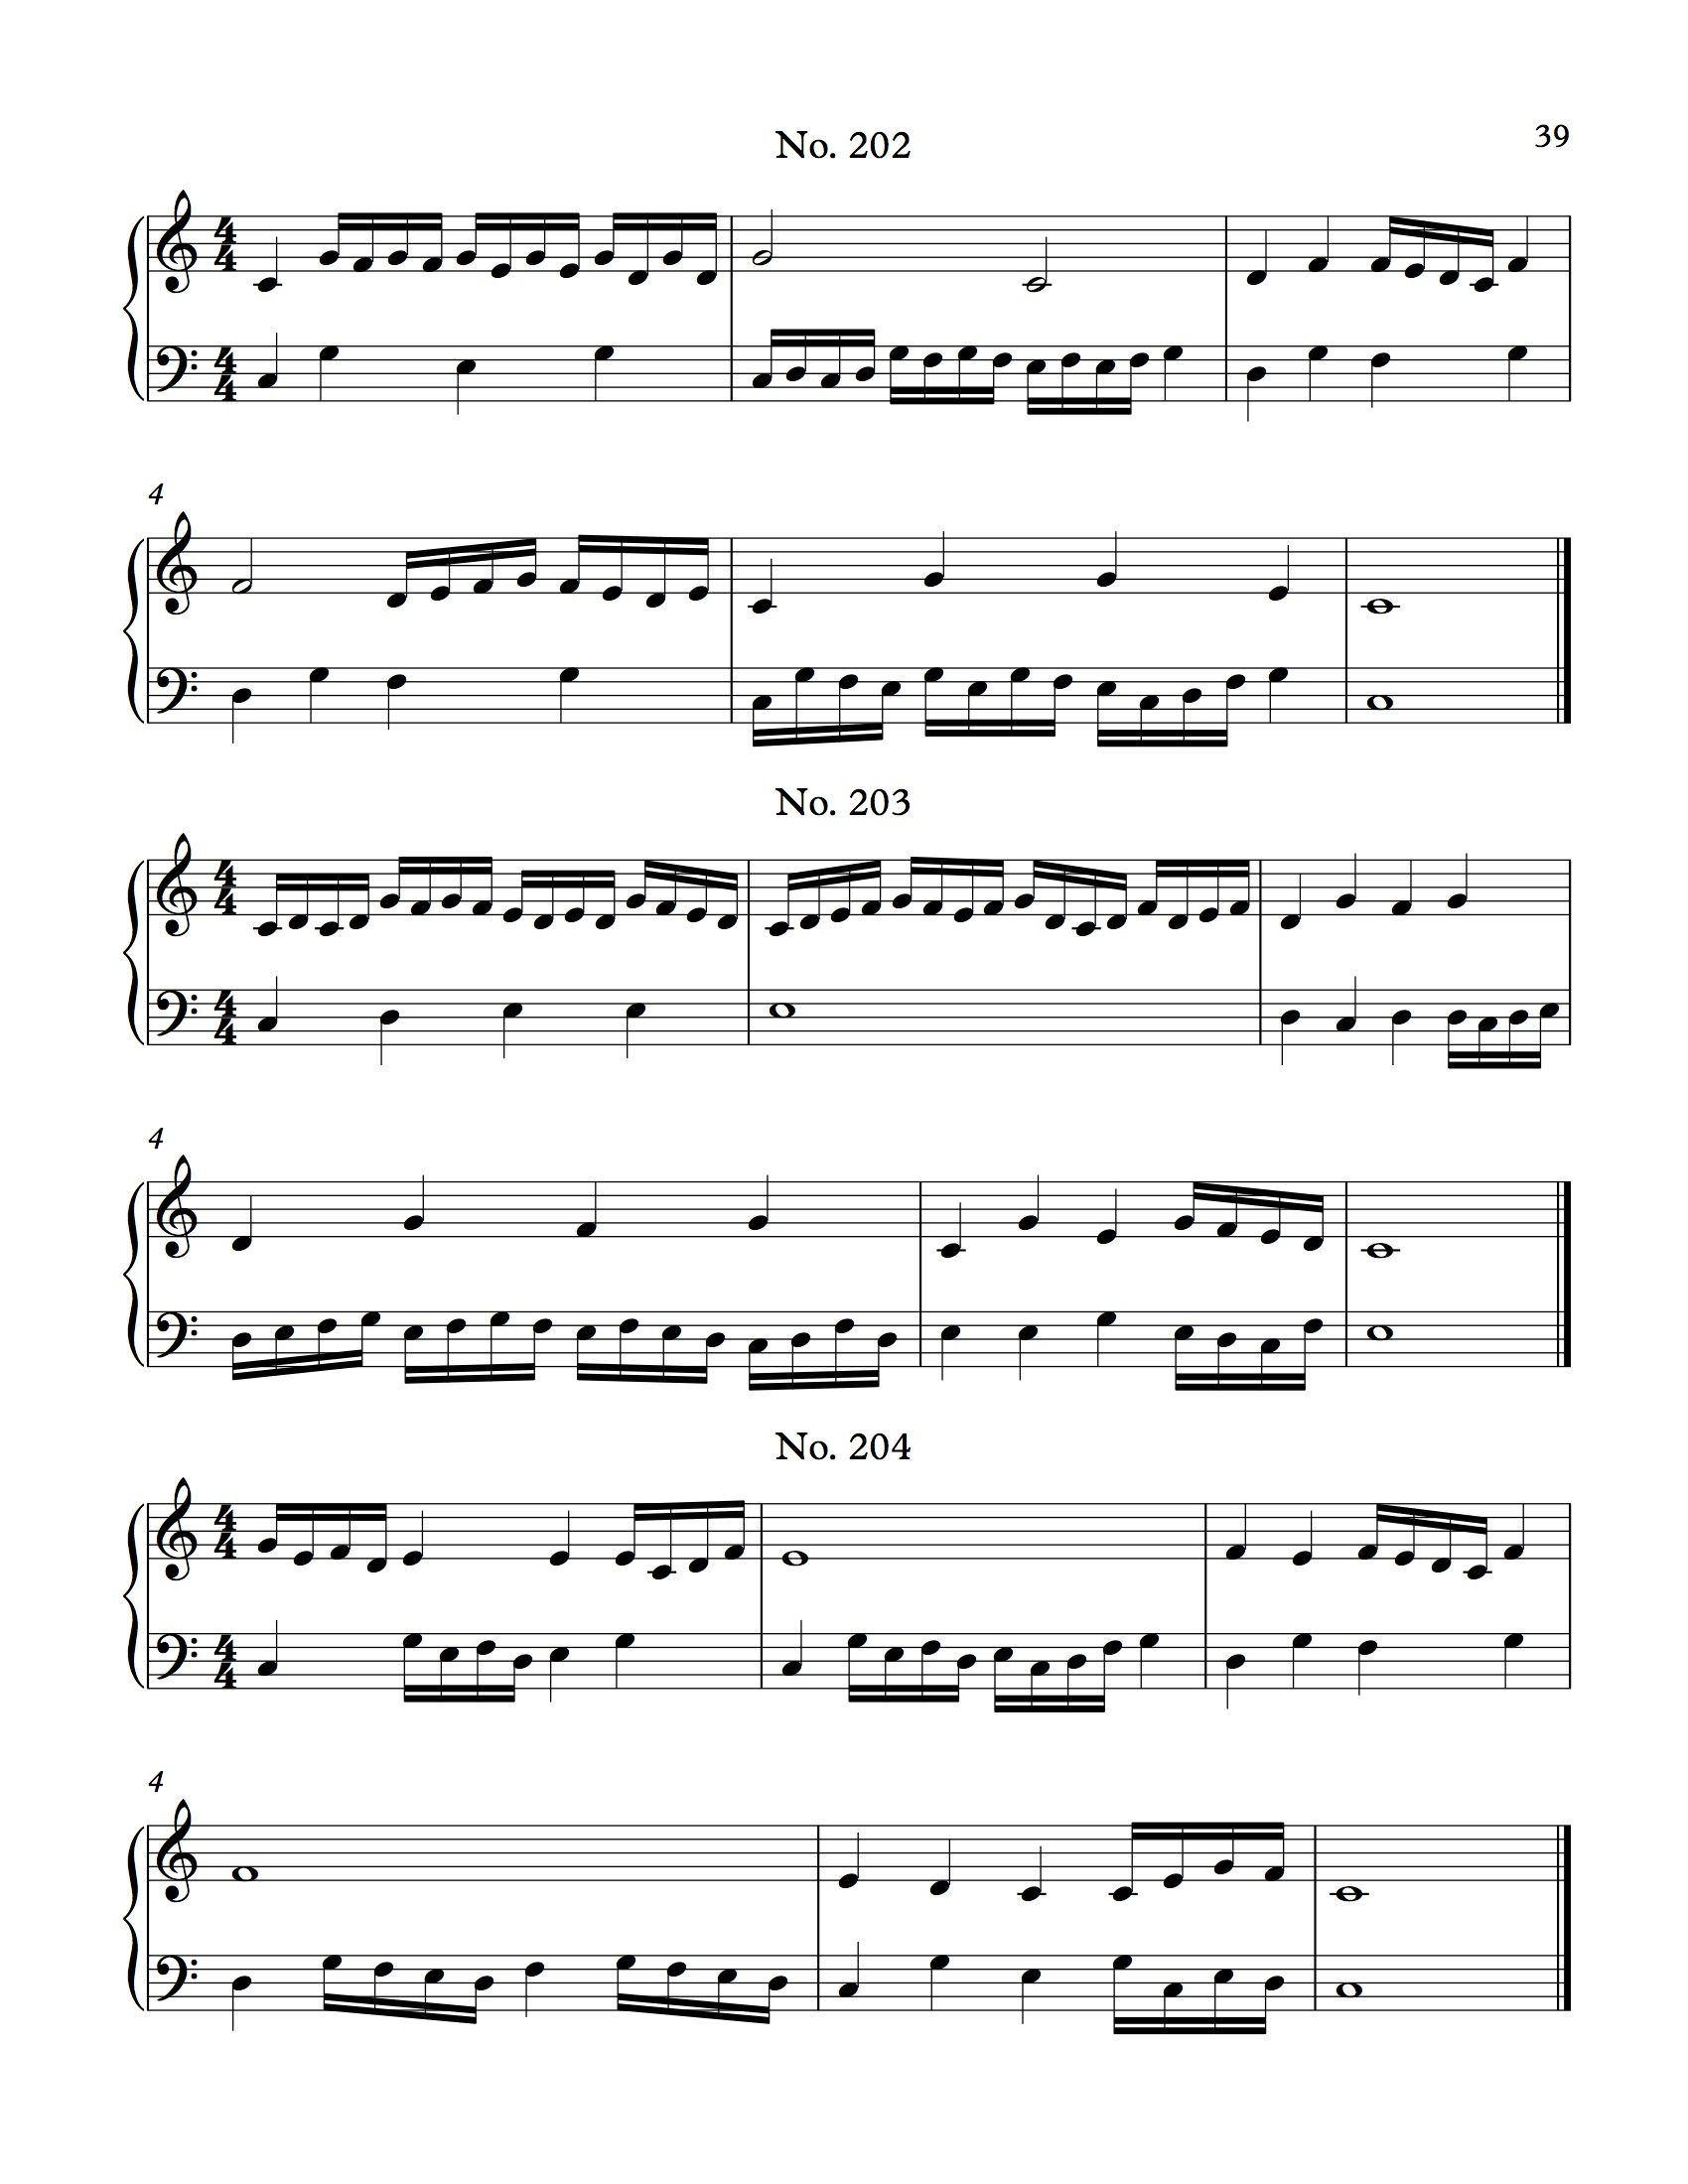 354 Sight Reading Exercises In C Major Image 2 | Piano